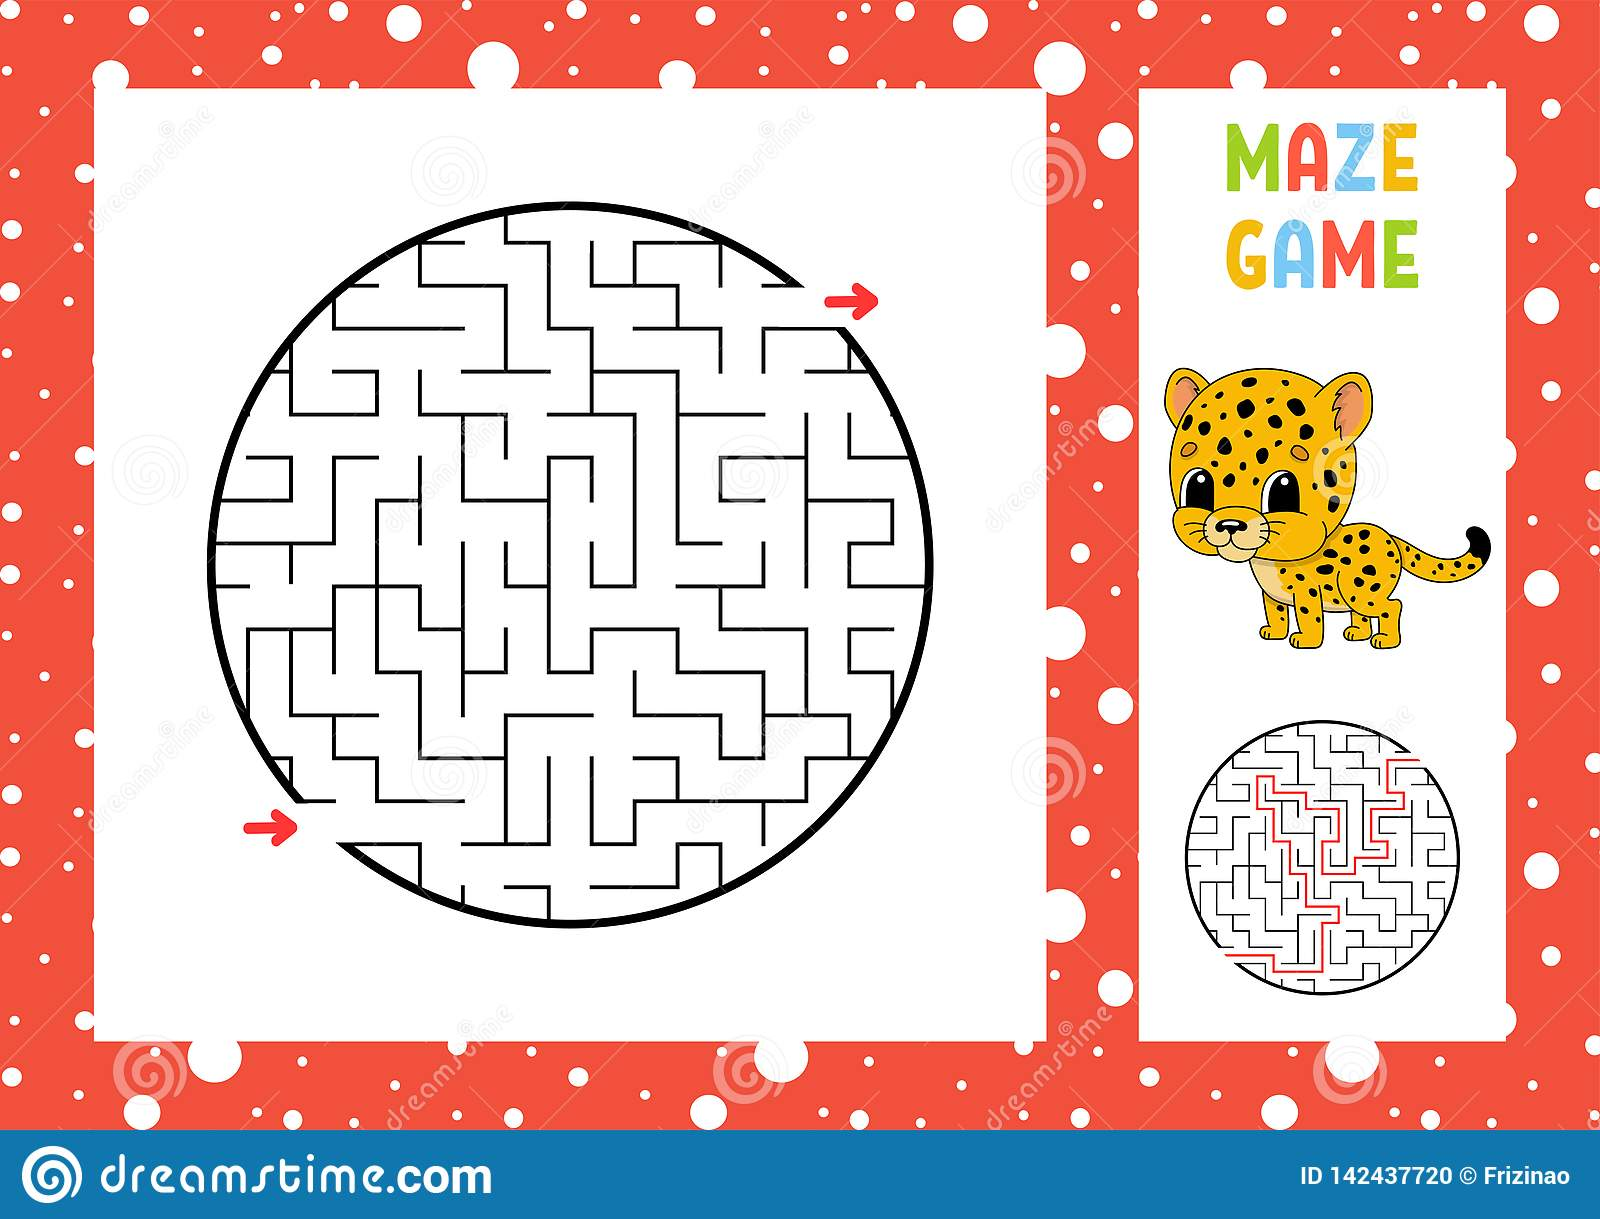 Maze Game For Kids Funny Labyrinth Education Developing